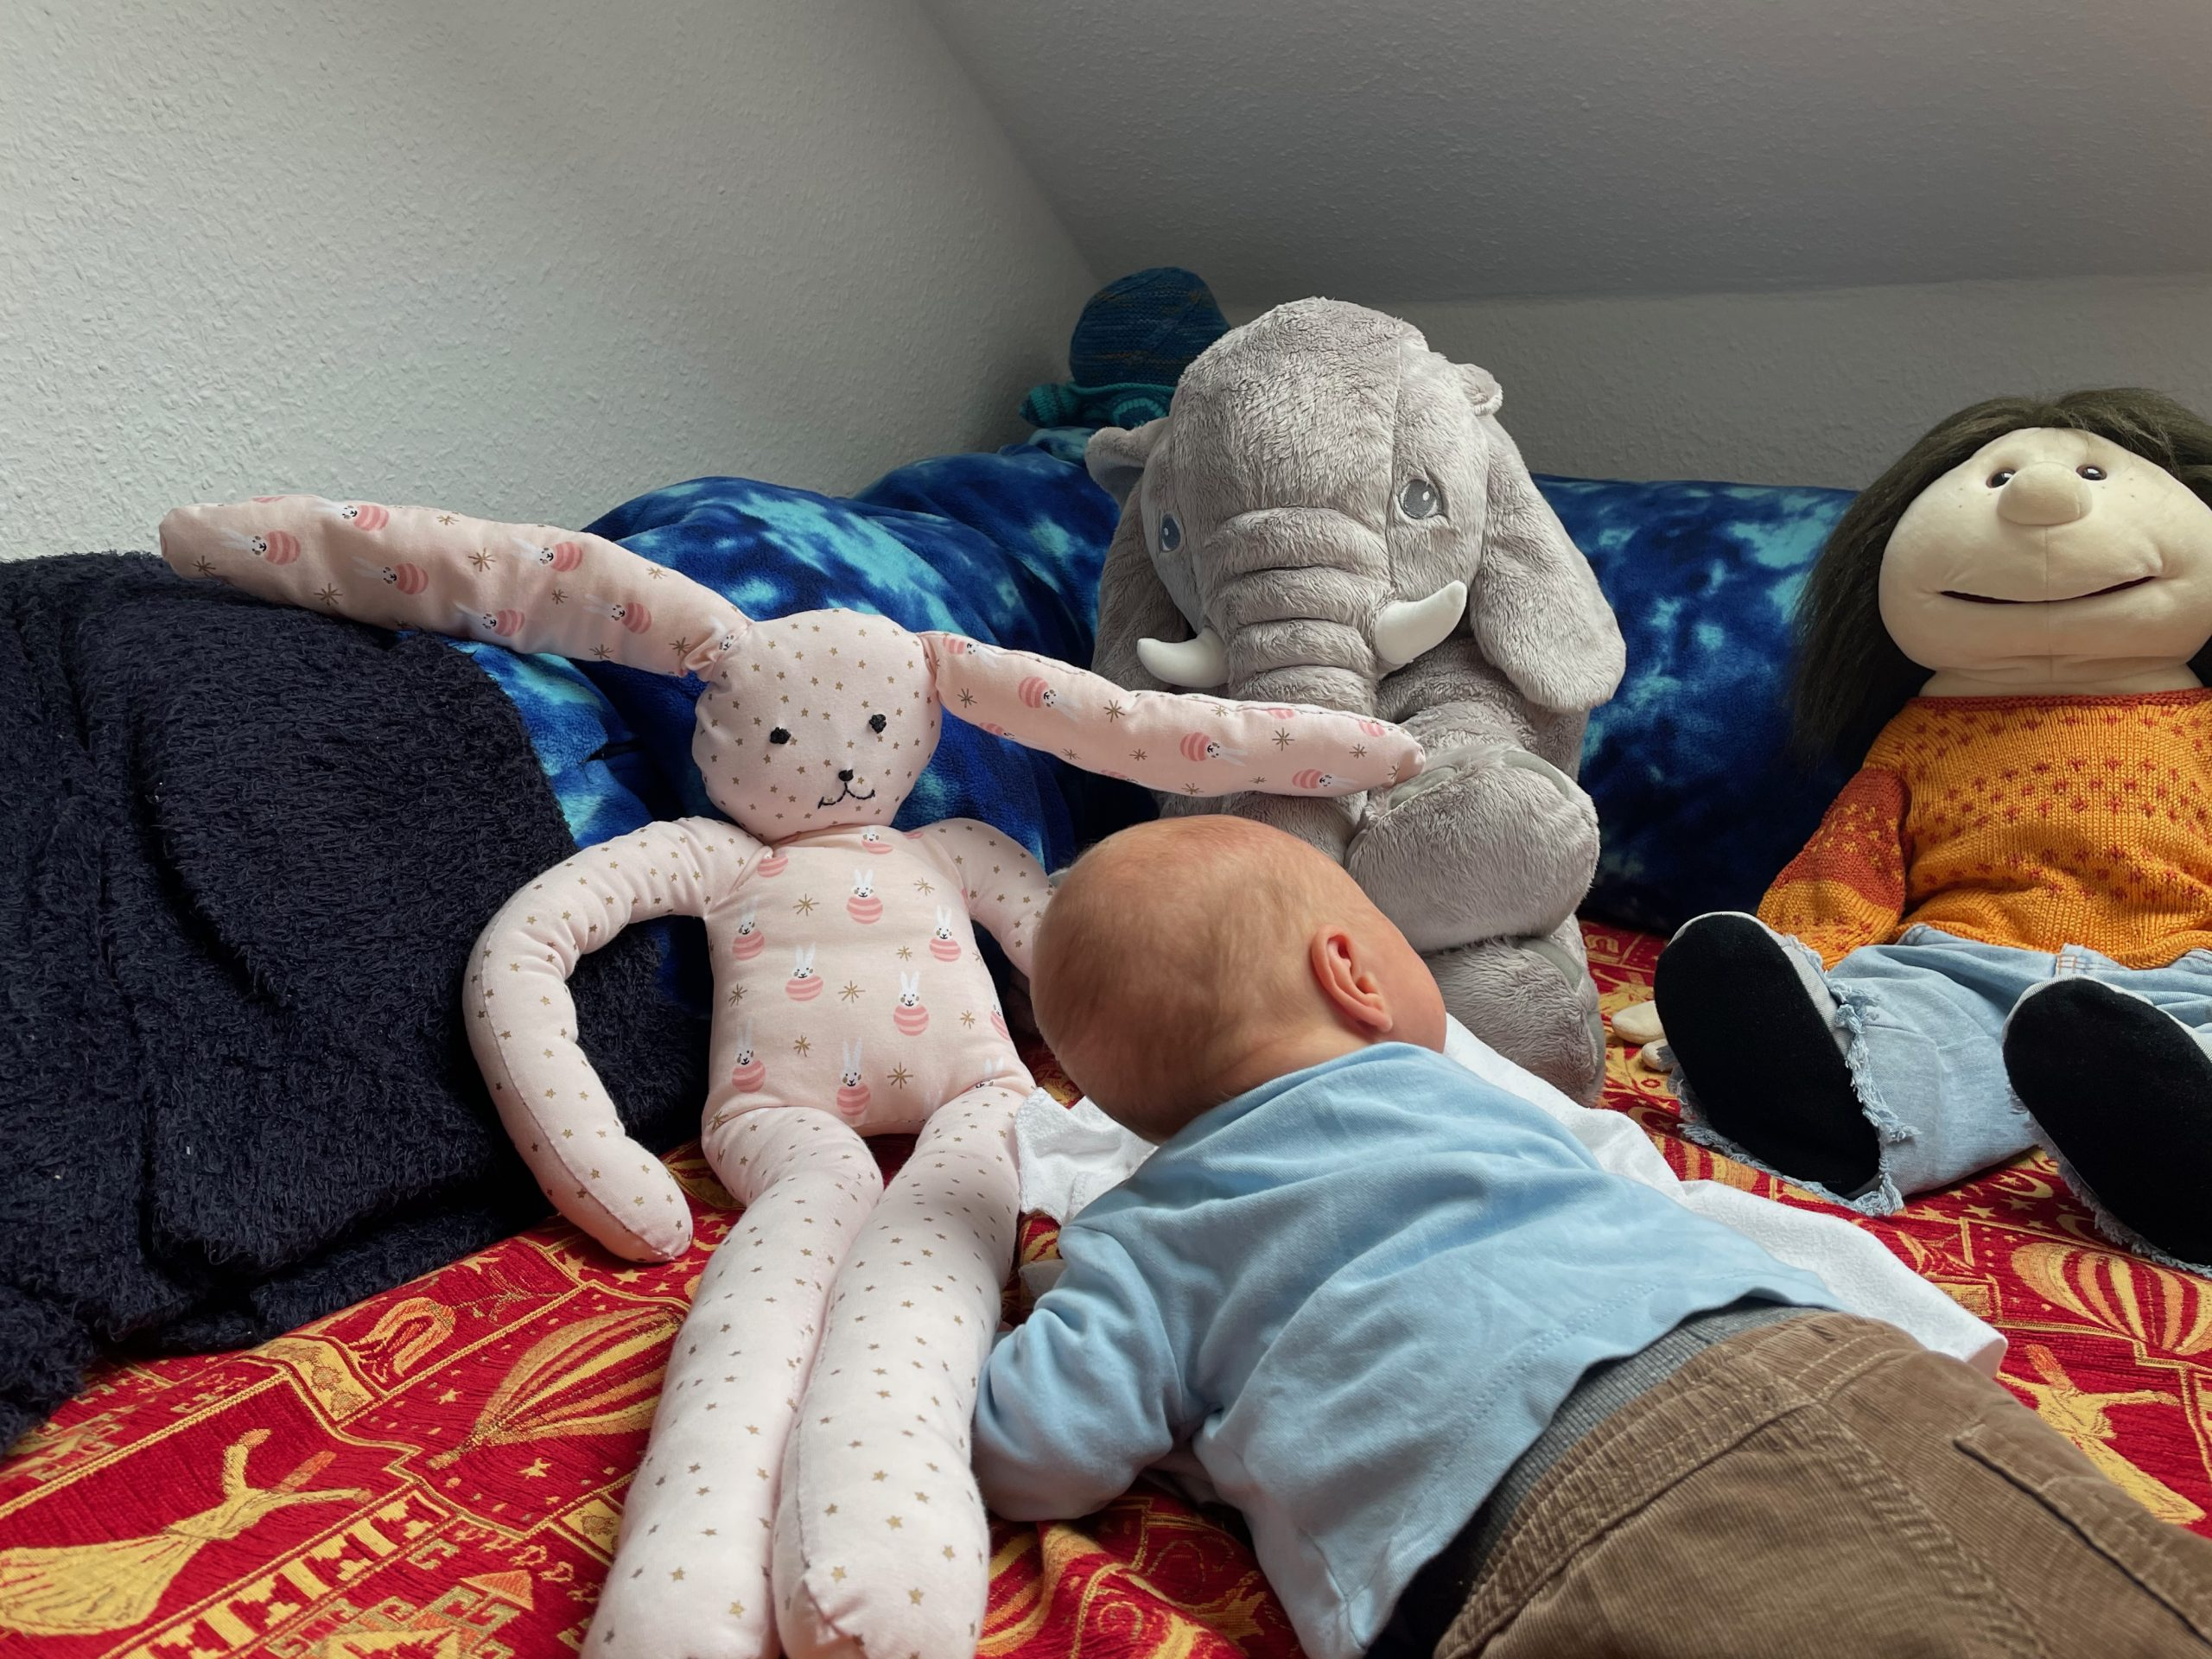 Philipp's baby laying with stuffed animals